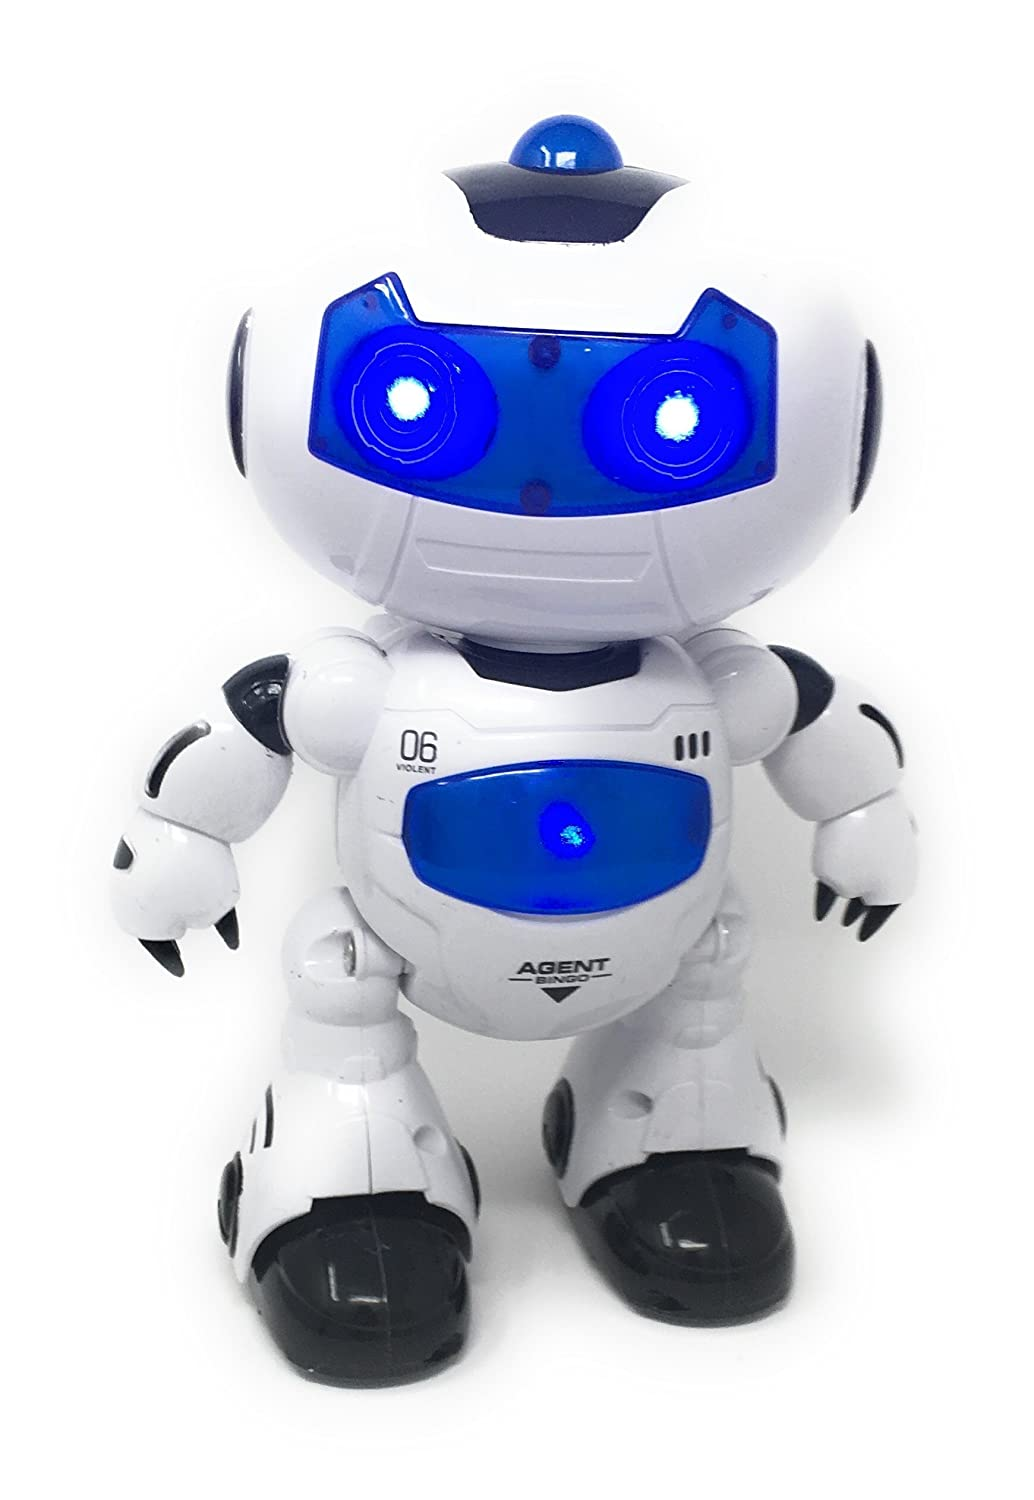 25 Electronic RC Robot Learning Toys - Hanmun XQ16006 Toddler Intelligent Action Dancing Remote Control Robot Toys with Music Lights for Kids Girls Boys